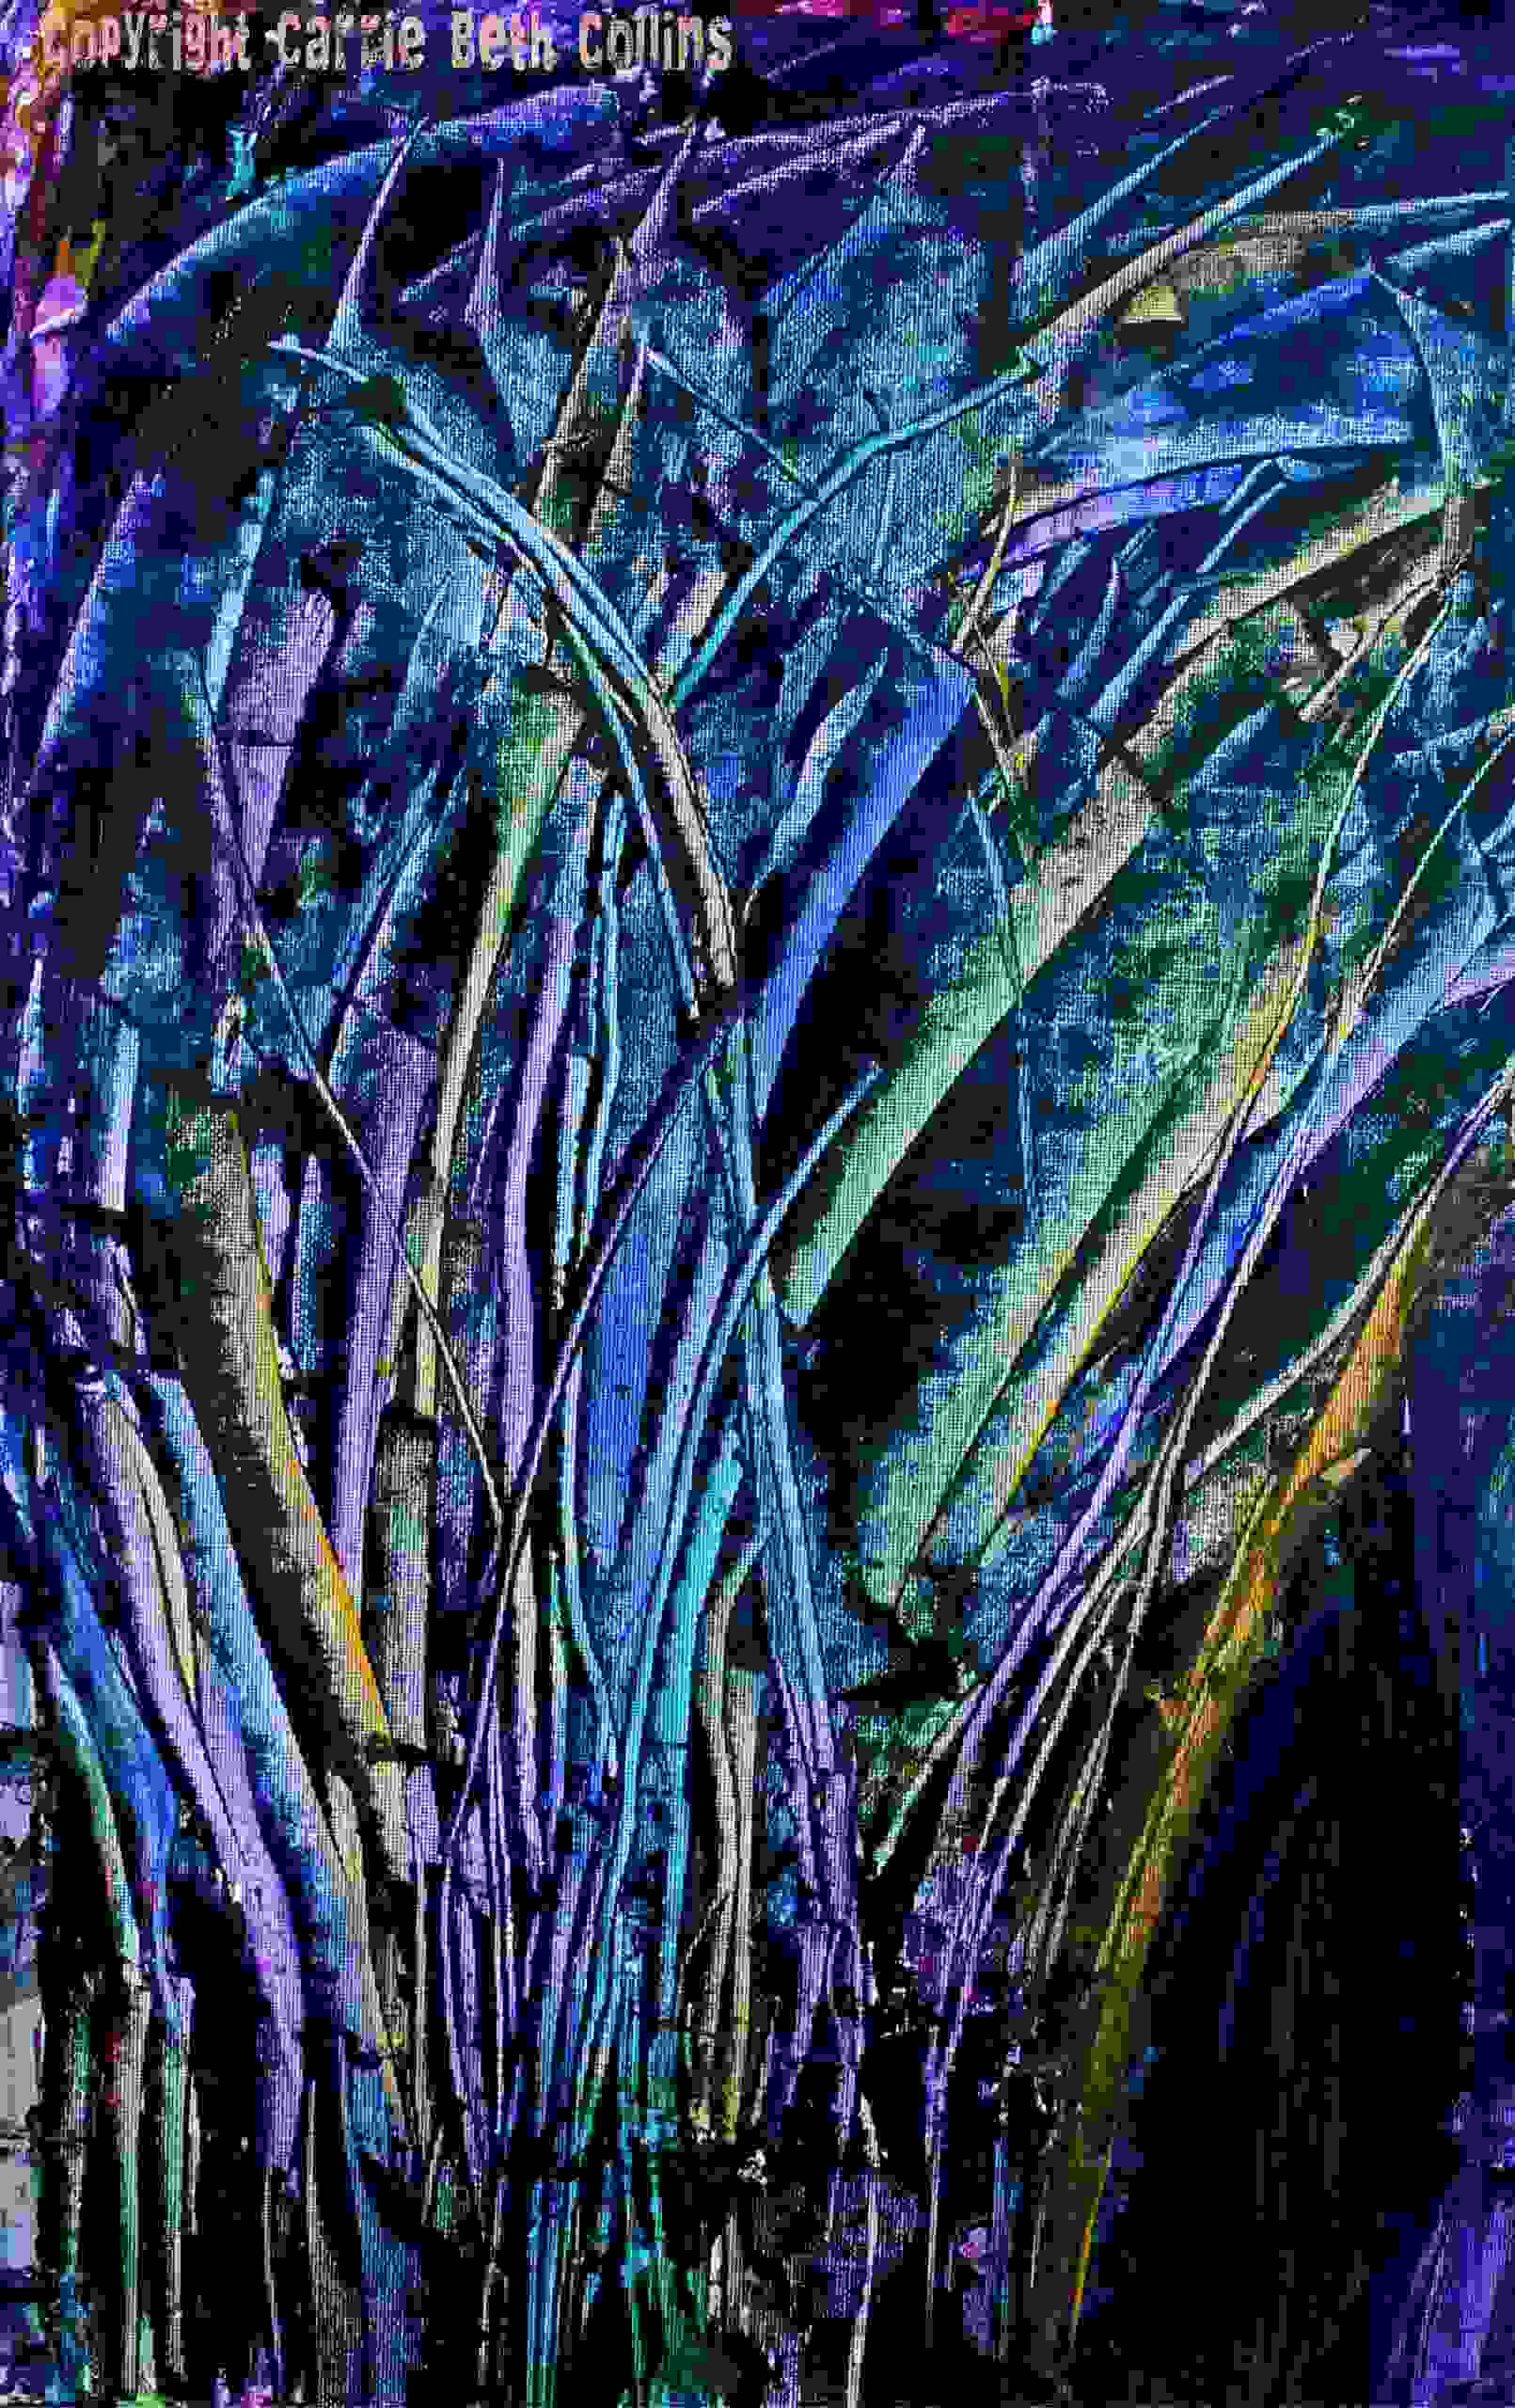 Abstract trees, nature art, abstract, painting, Carrie Beth Collins, contemporary art, artist